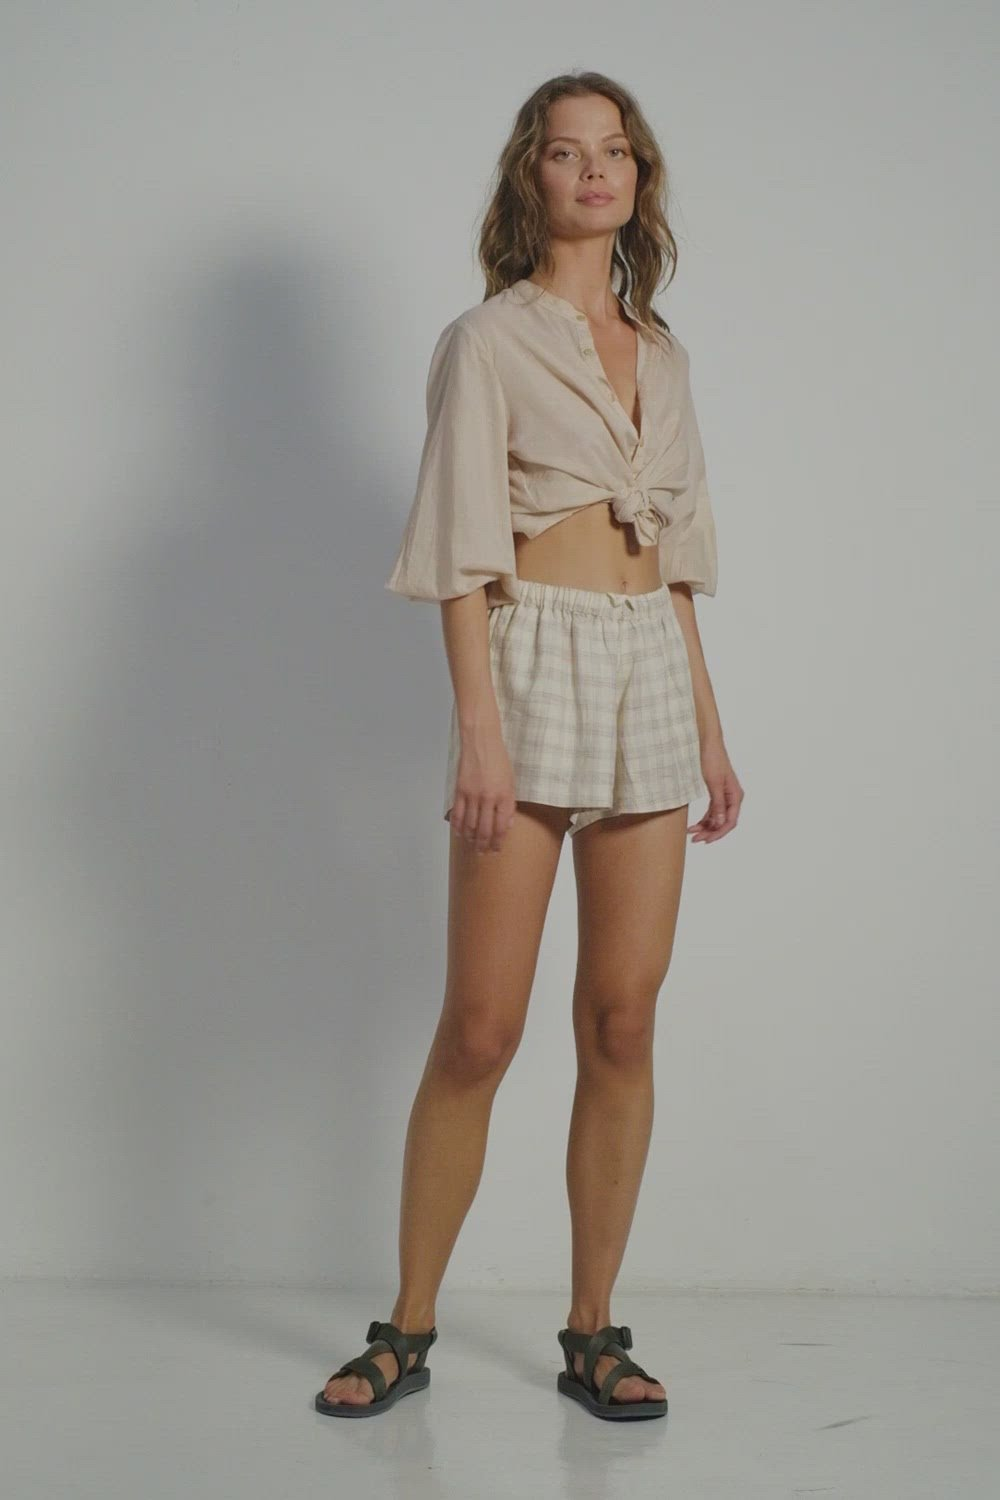 A woman wearing summer linen shorts in check print and a beige blouse by Lilya